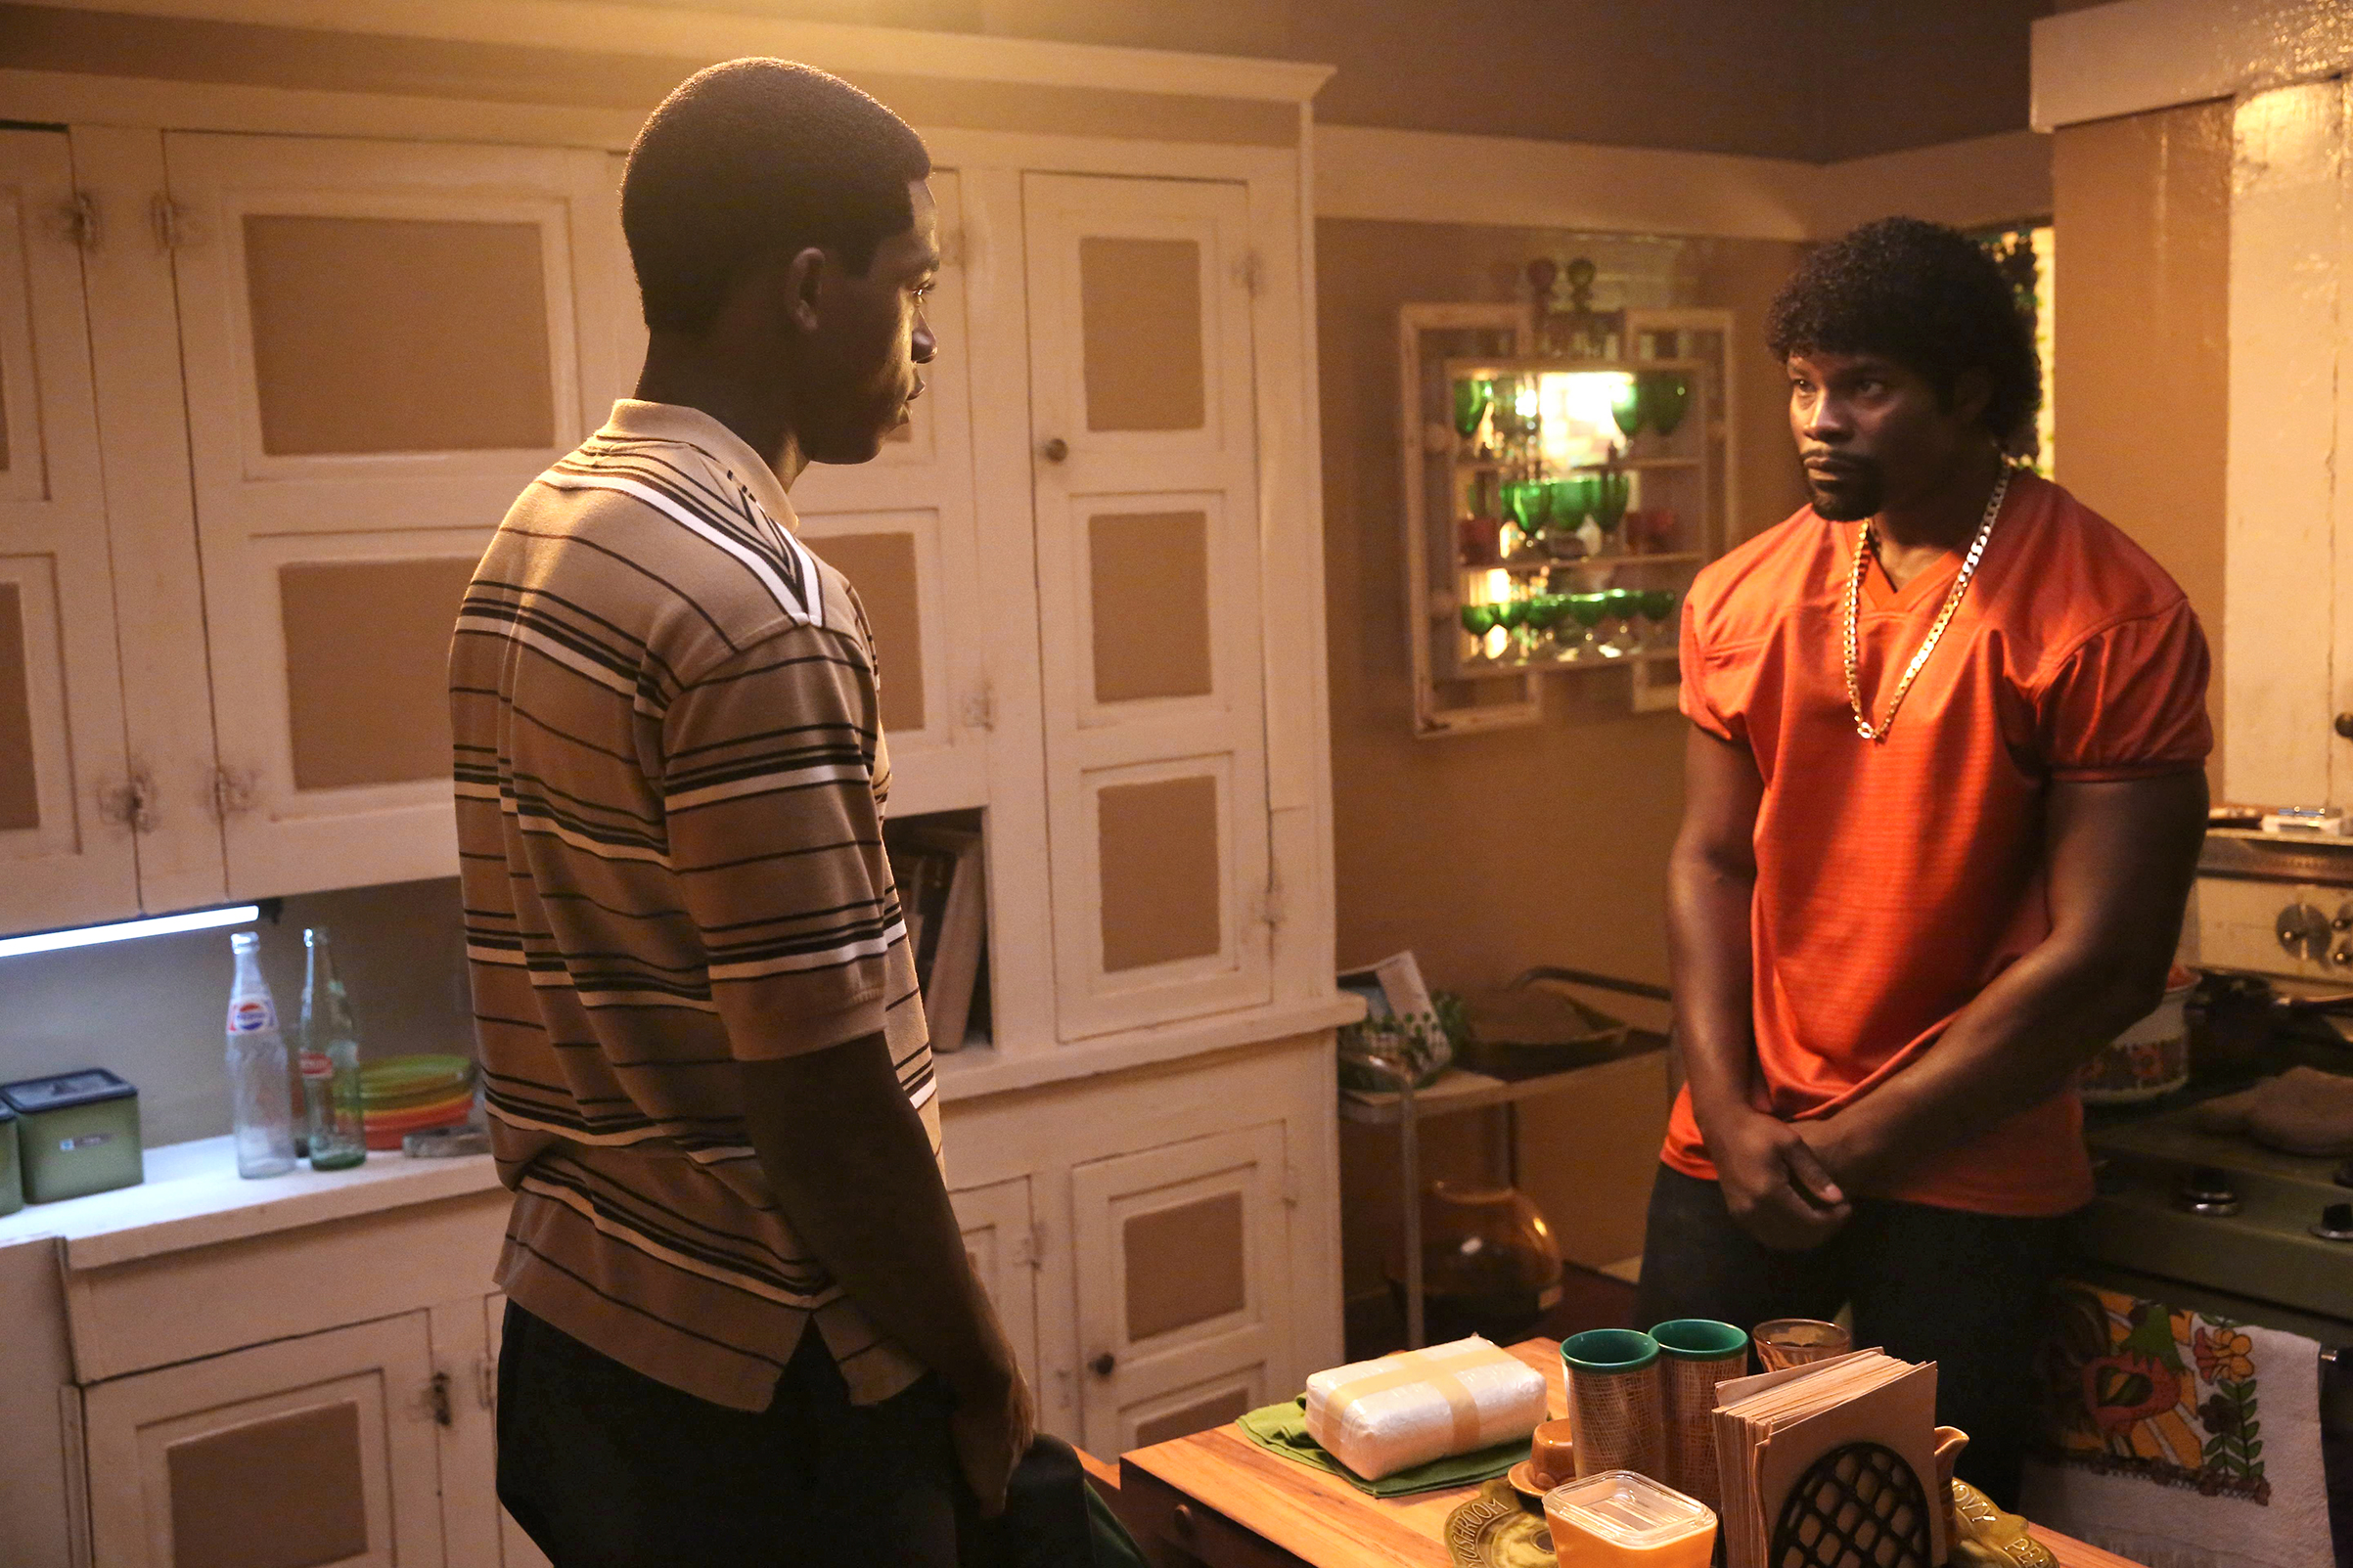 Idris and Joseph, trapped in a system that the younger man hopes to master